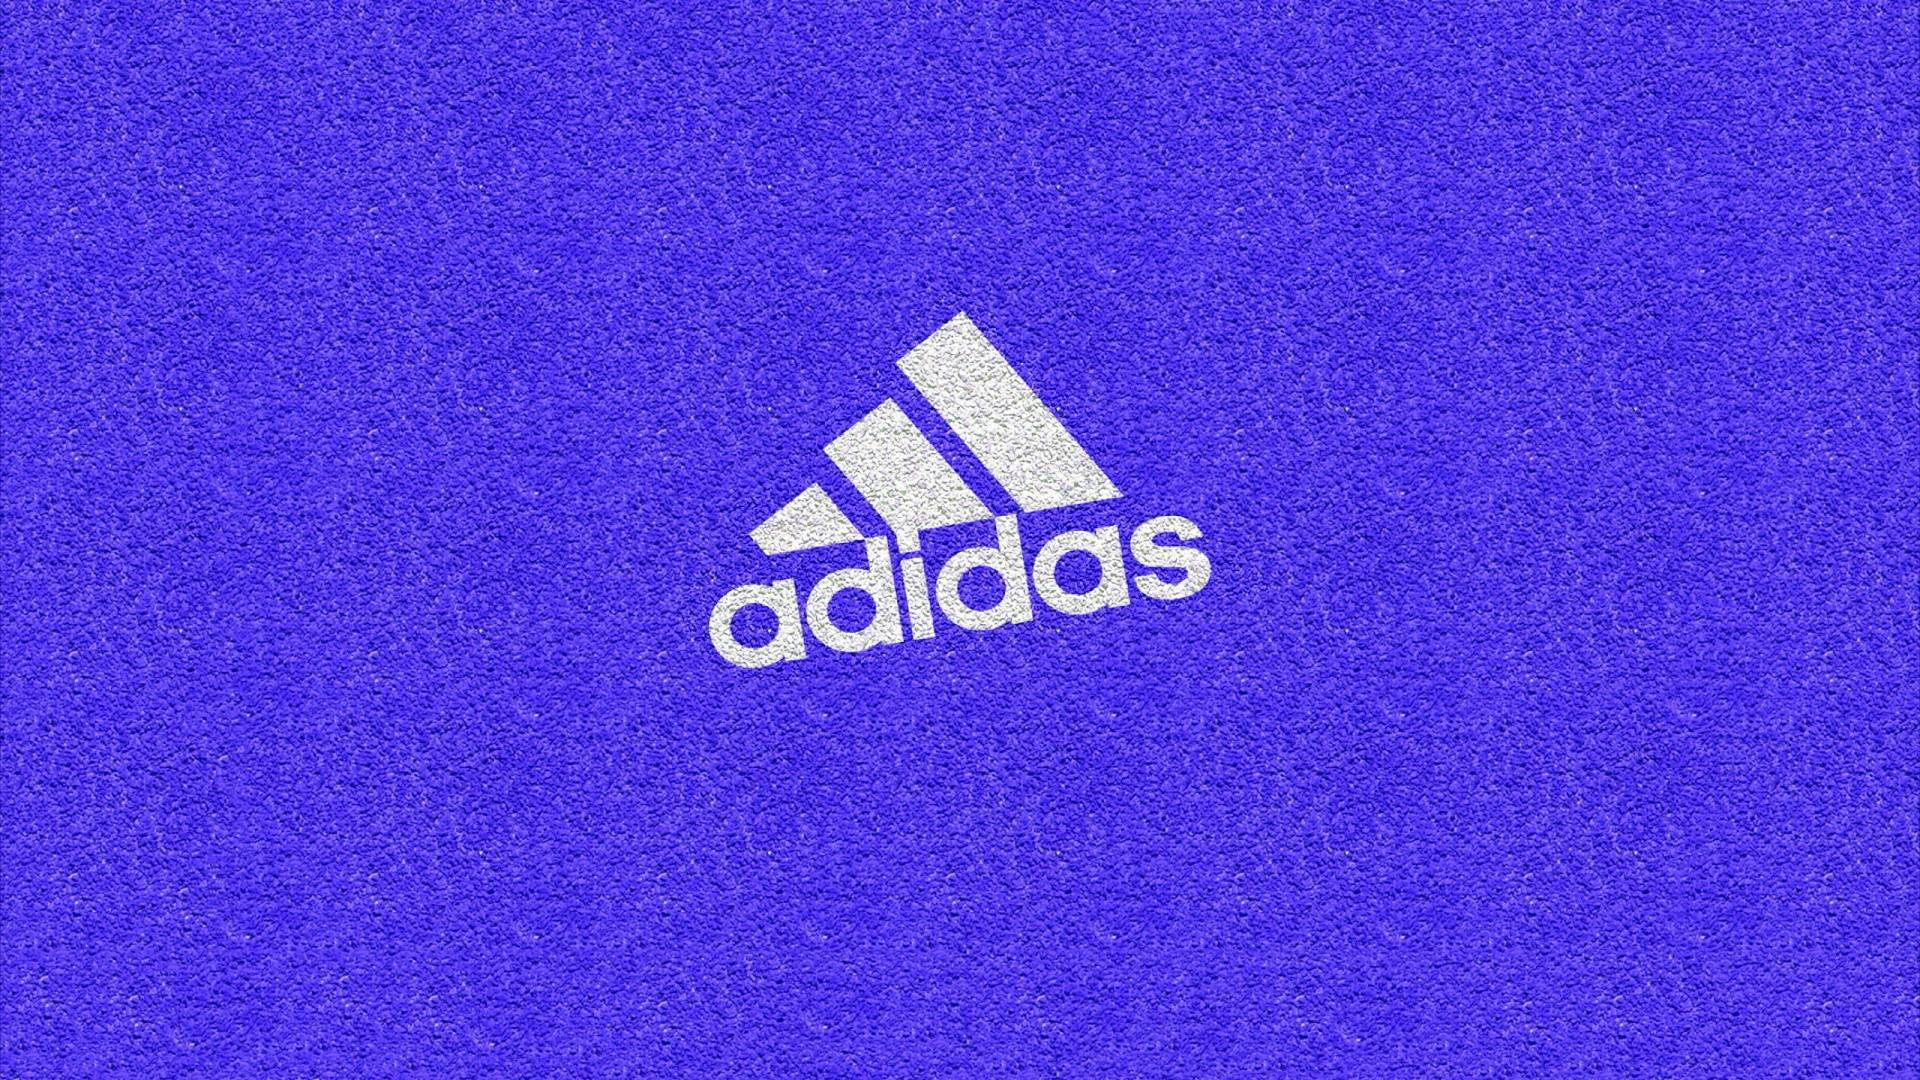 16 Adidas Wallpapers | Adidas Backgrounds